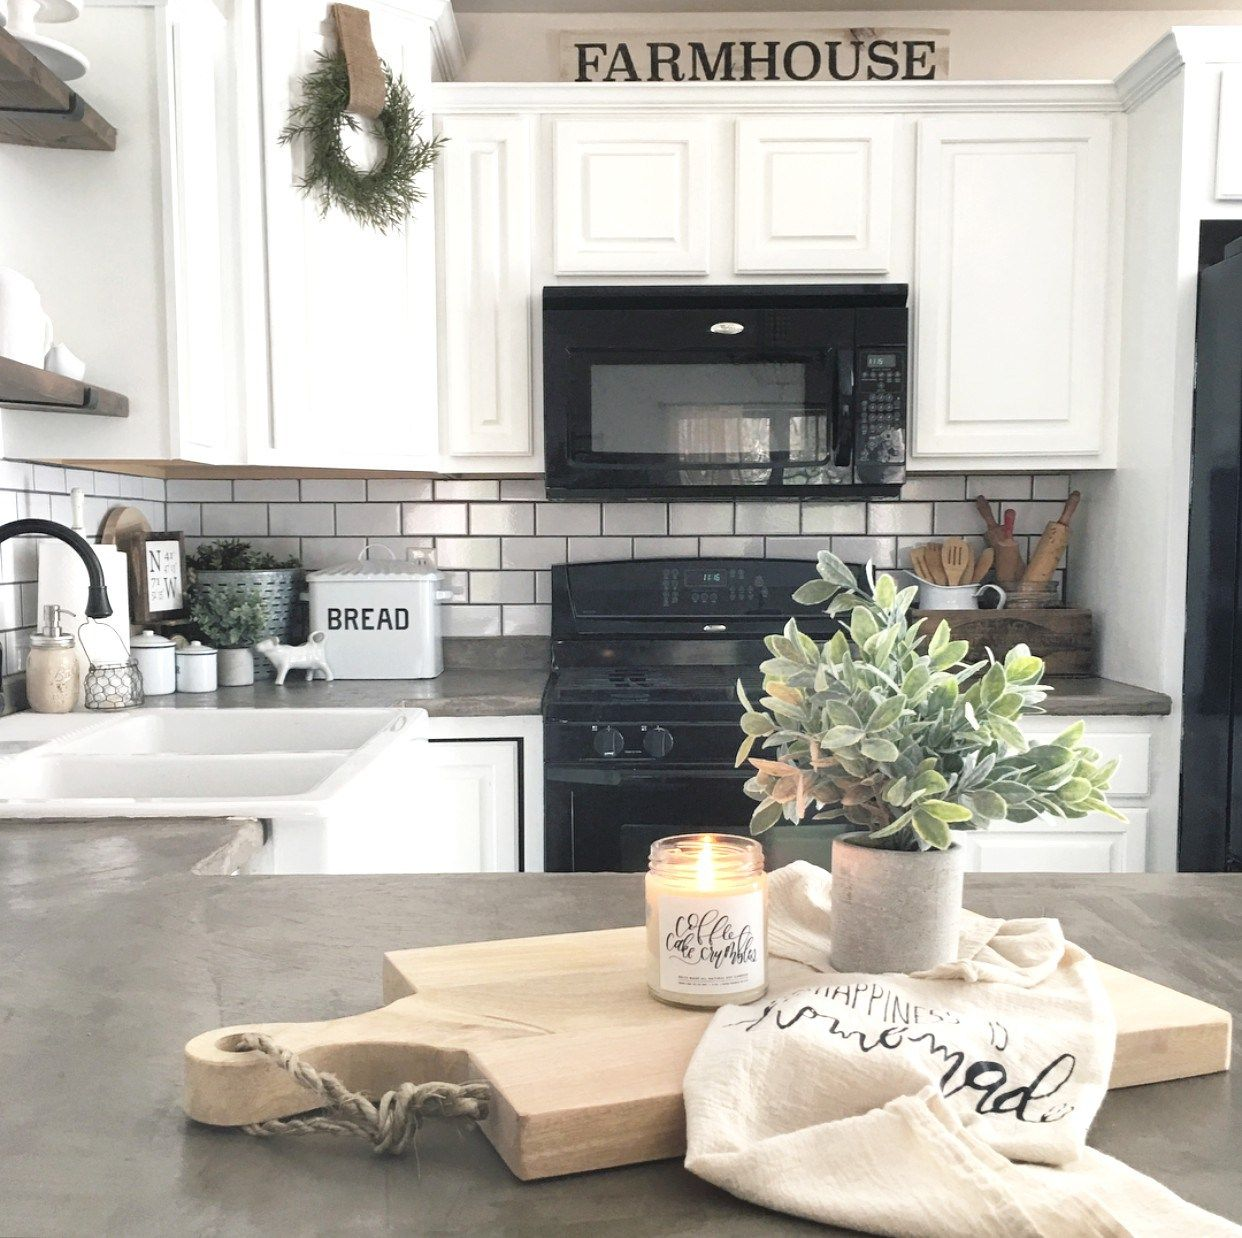 Kitchen Decorations For Countertops Farmhouse Kitchen The Little White Farmhouse Blog